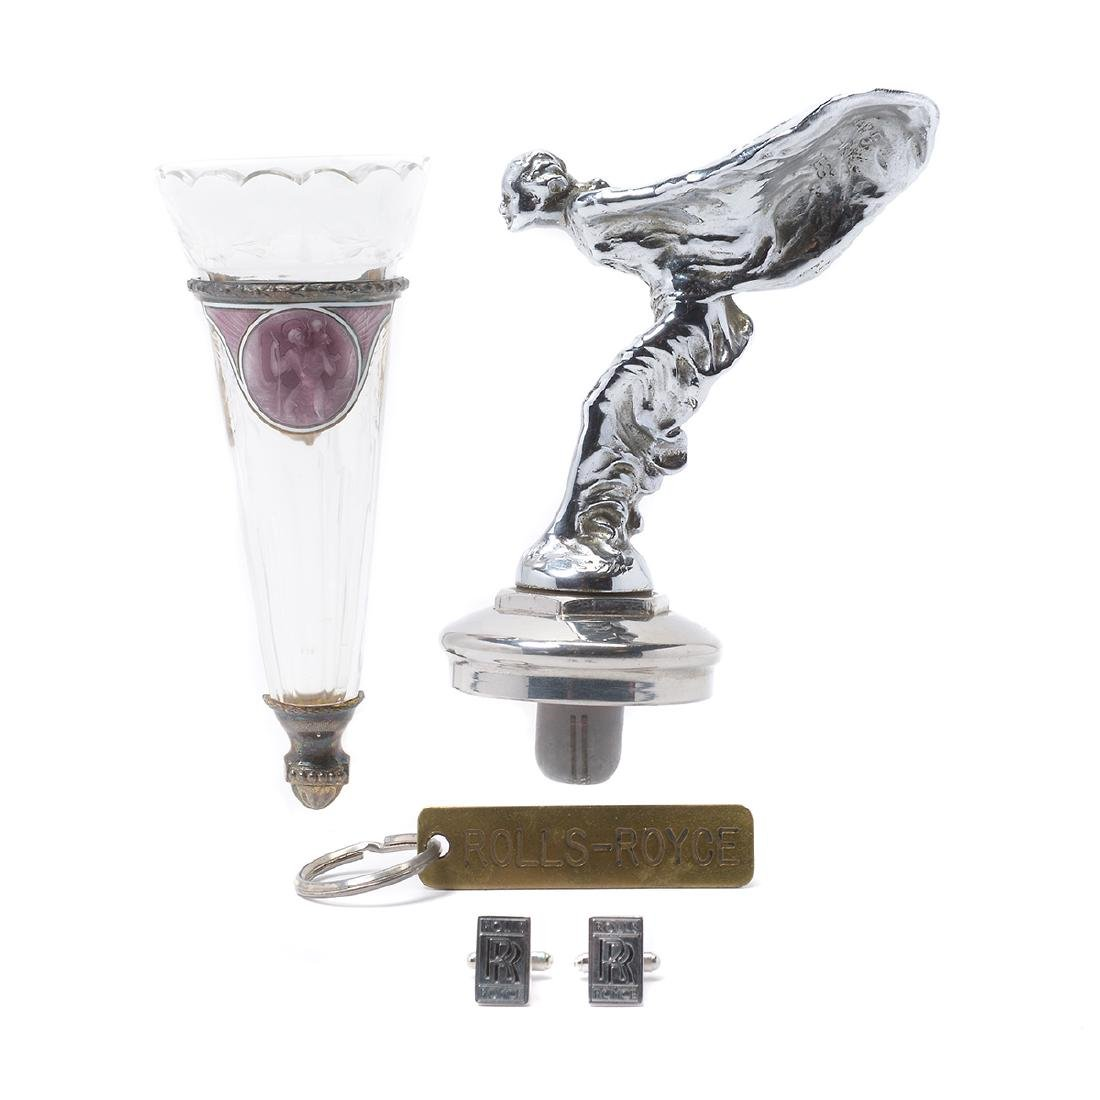 Royal Royce Hood Ornament, Floral Vase, Key Chain and